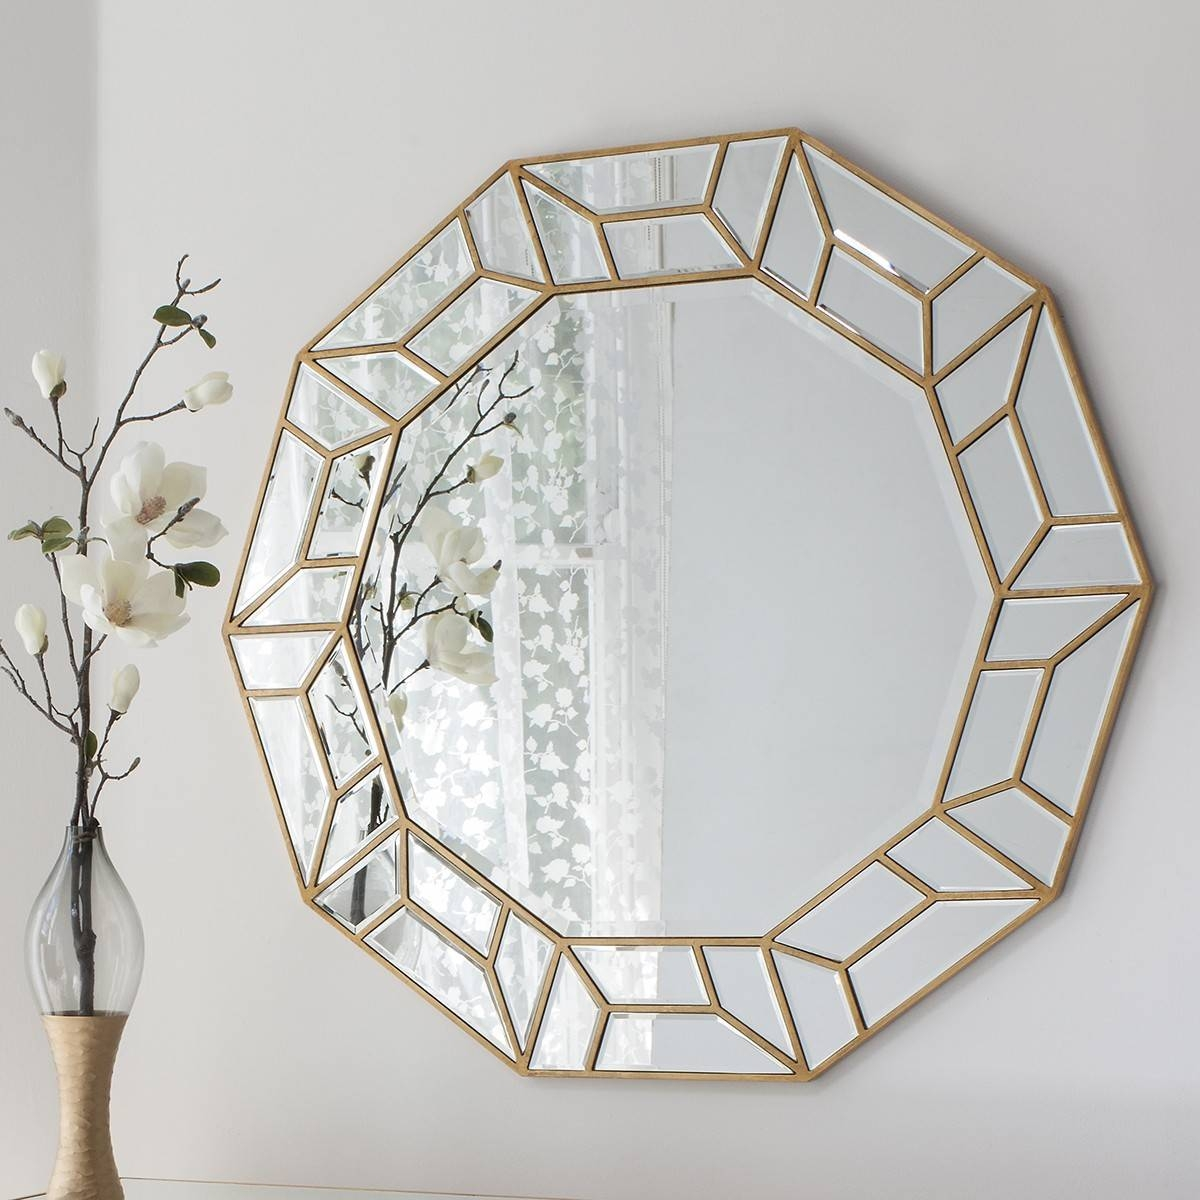 D'or Art Deco Mirror From £349 - Luxury Wall Mirrors | Ashden Road intended for Art Deco Mirrors (Image 15 of 25)